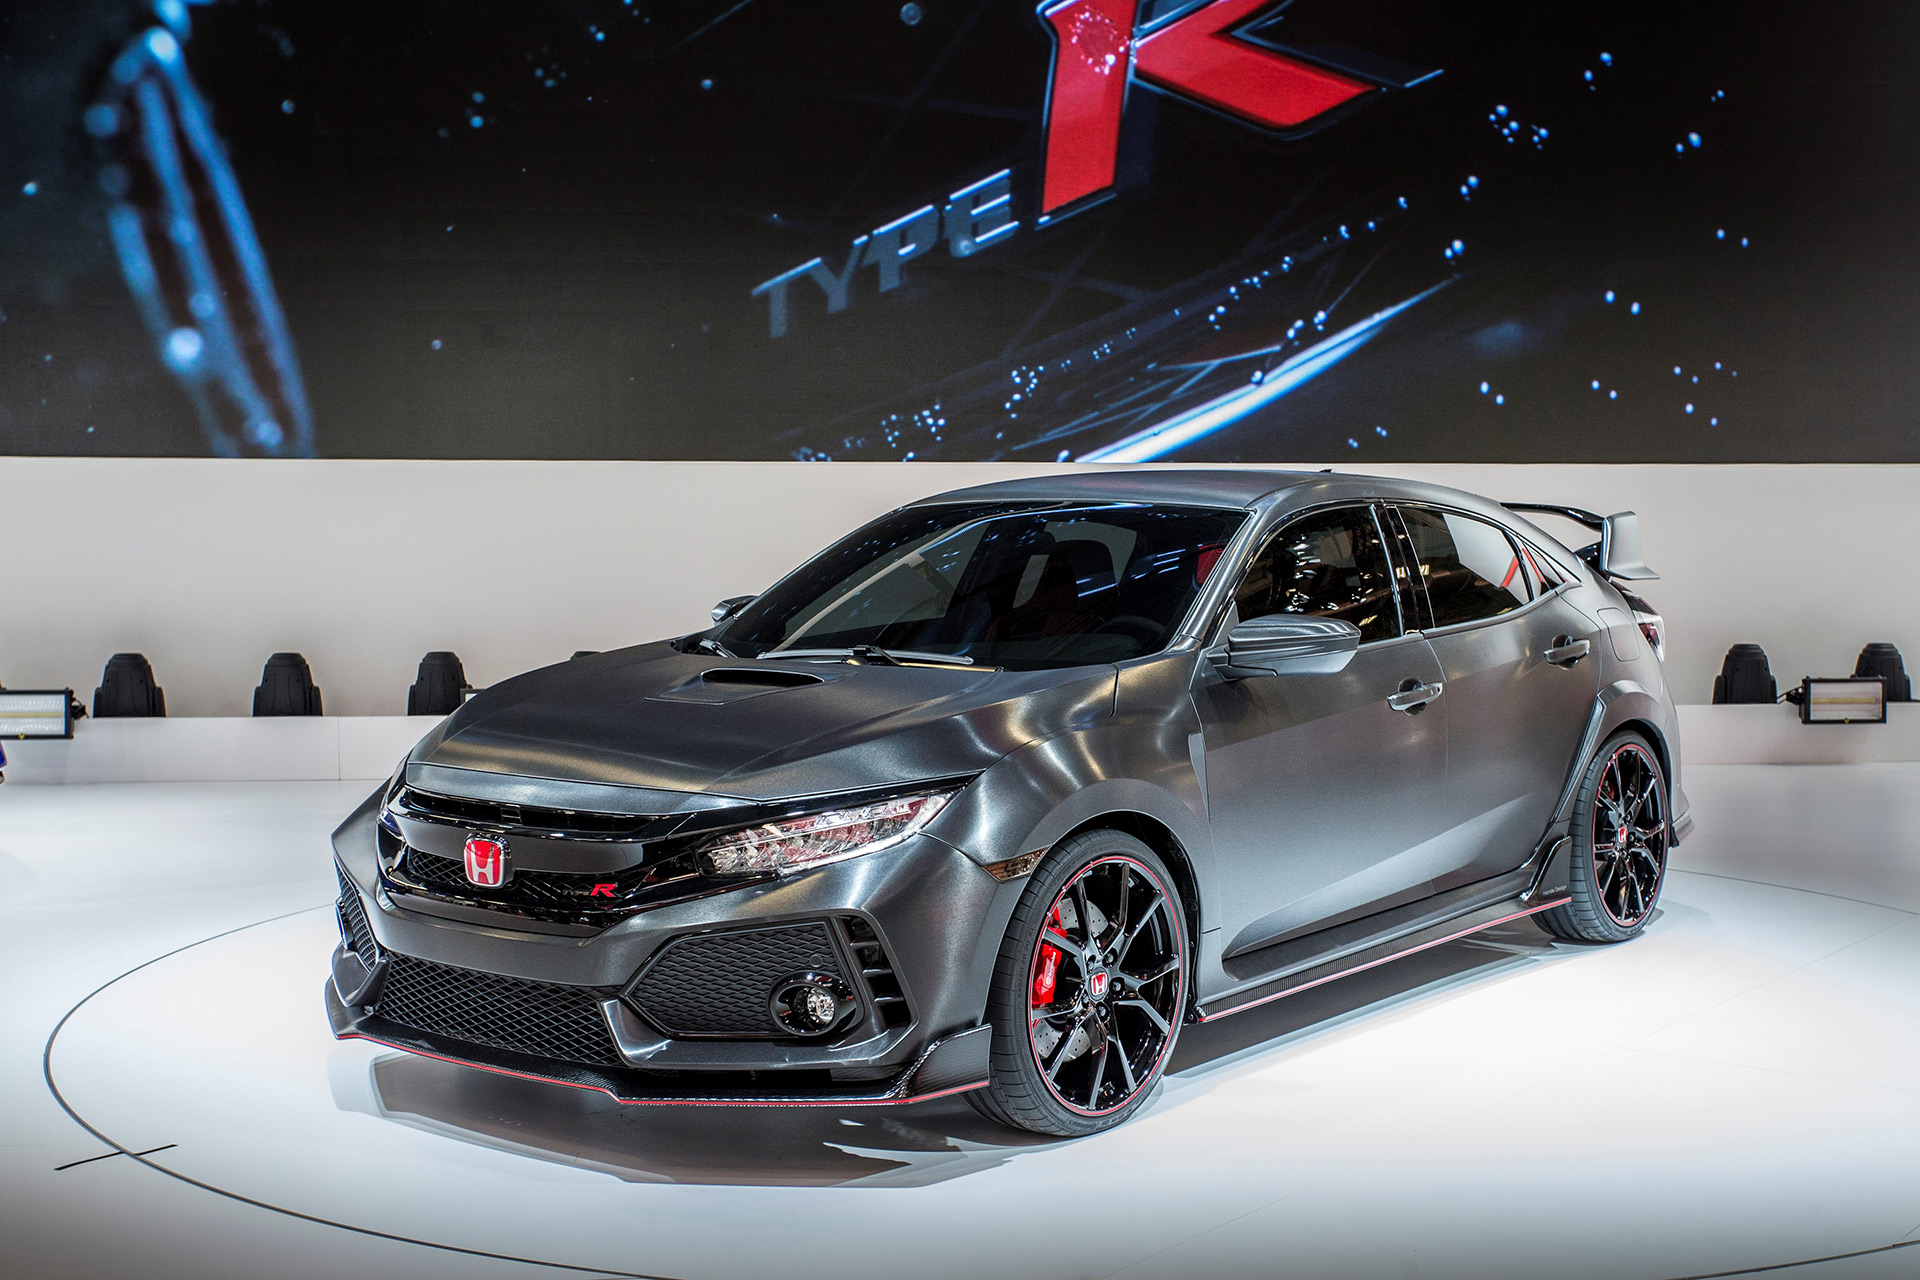 2017 civic type r. 2017 civic type-r type r